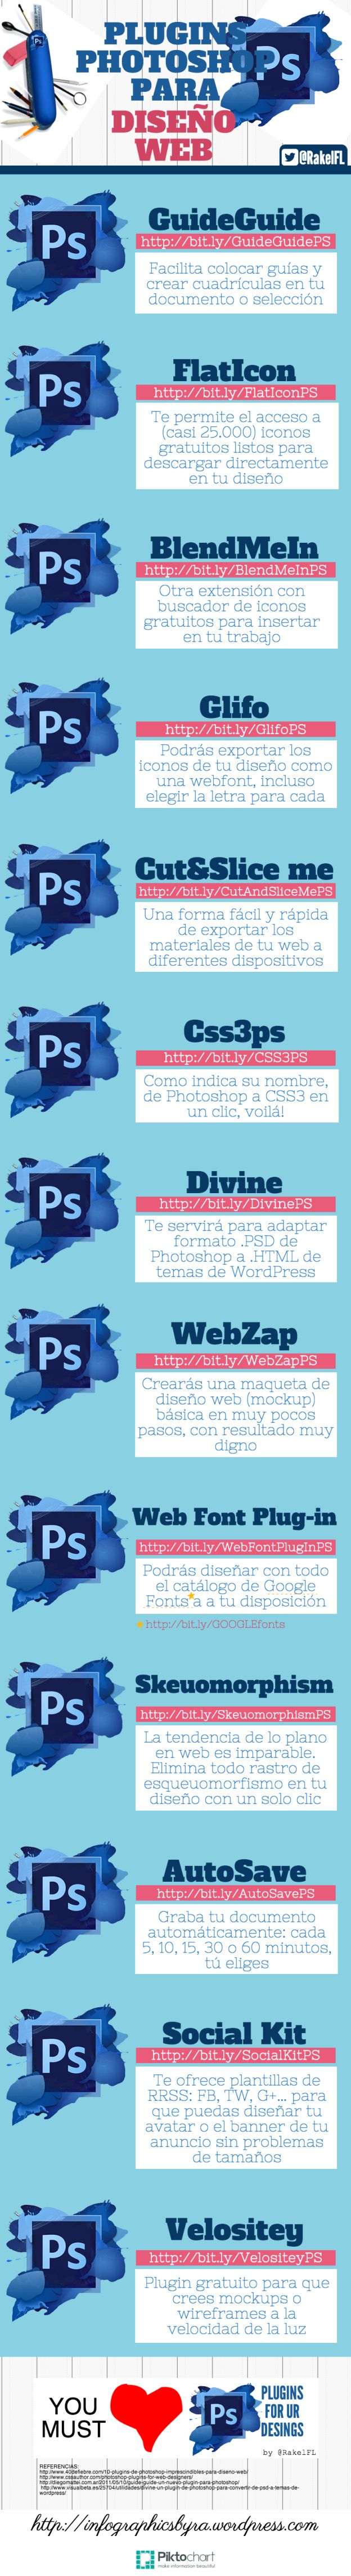 Plugins de Photoshop para Diseño Web